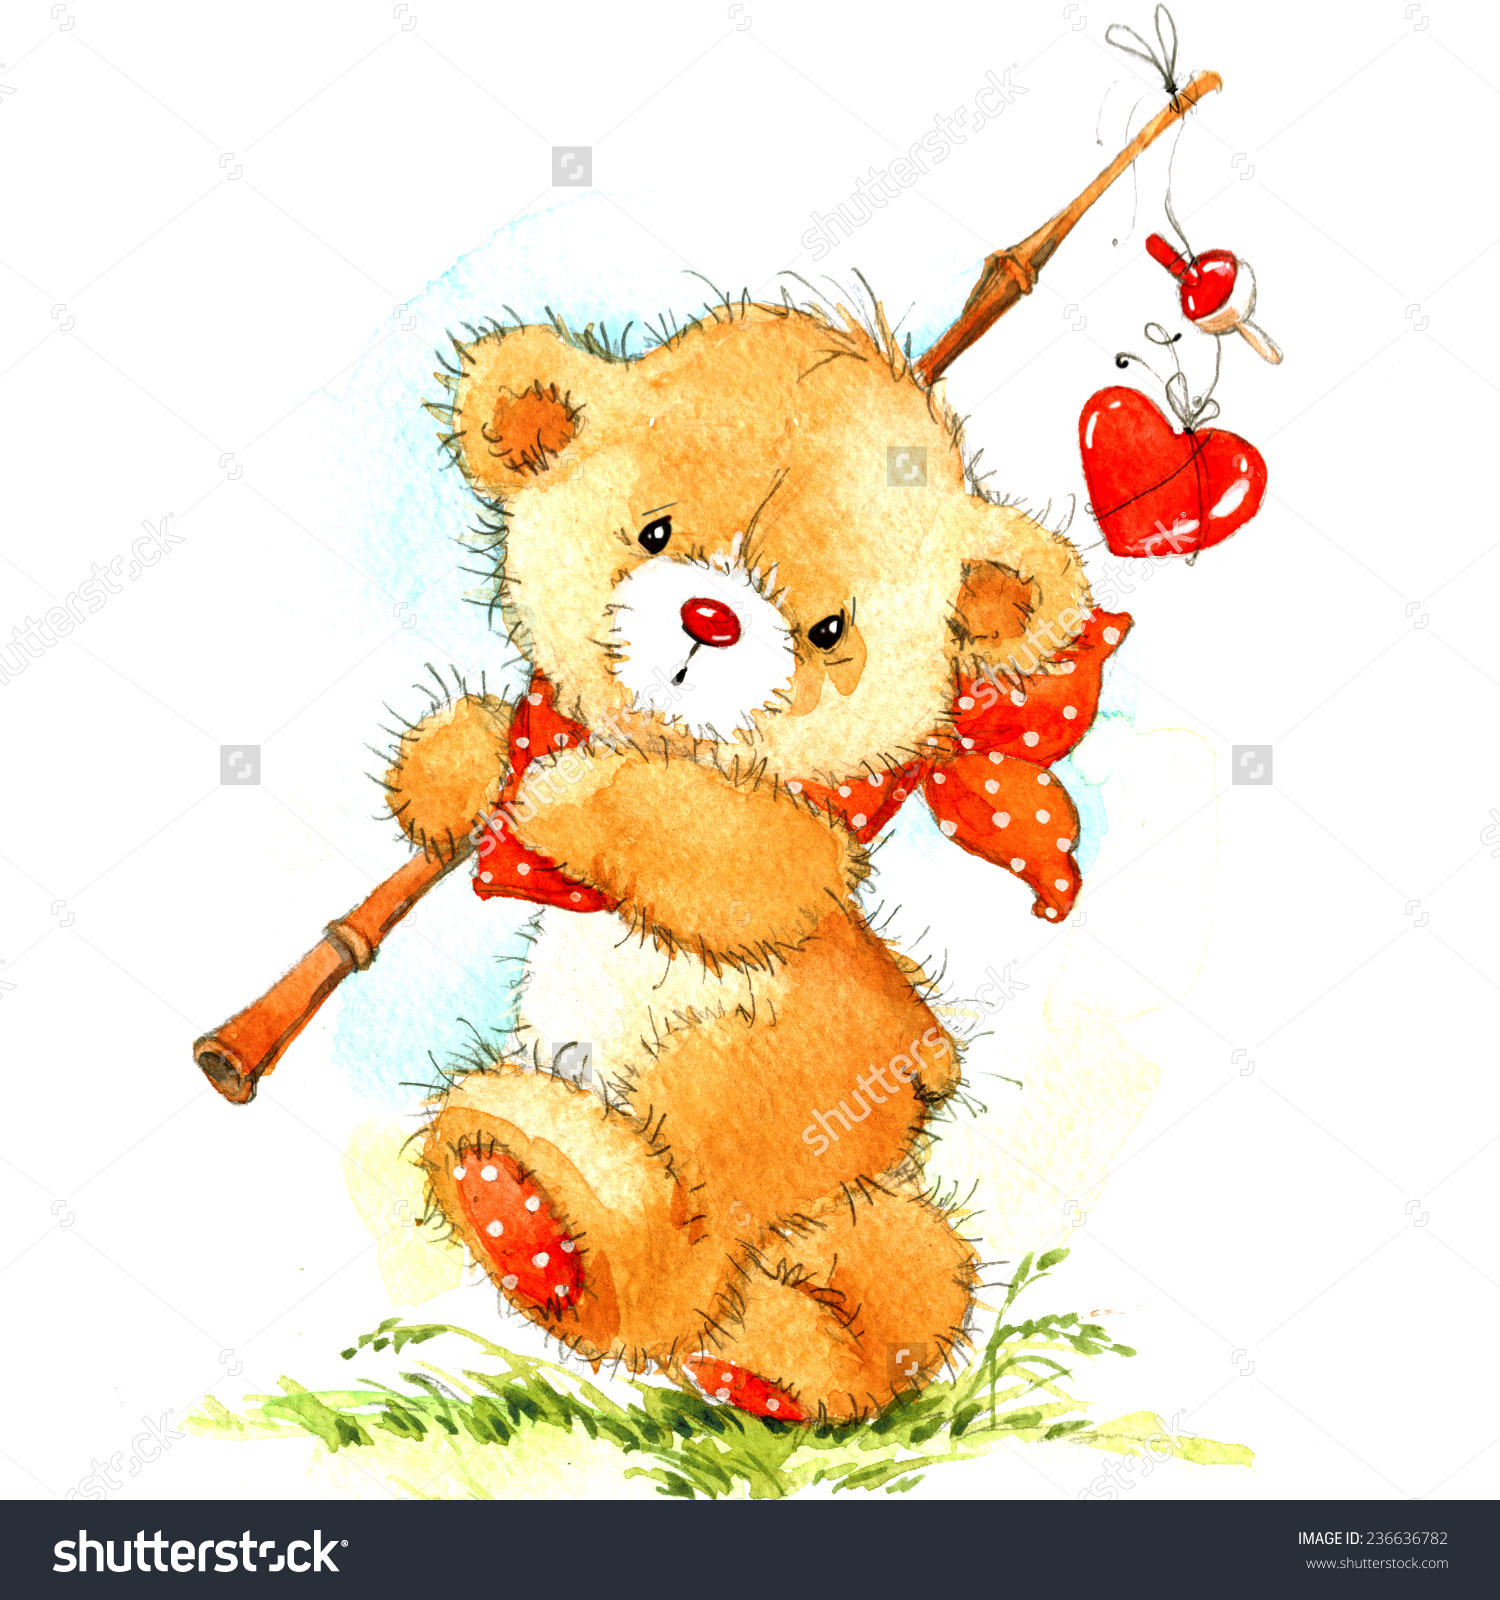 Teddy bears drawing at getdrawings free for personal use teddy 1500x1600 better cute teddy bears drawings bear colorful drawing of izmirmasajfo